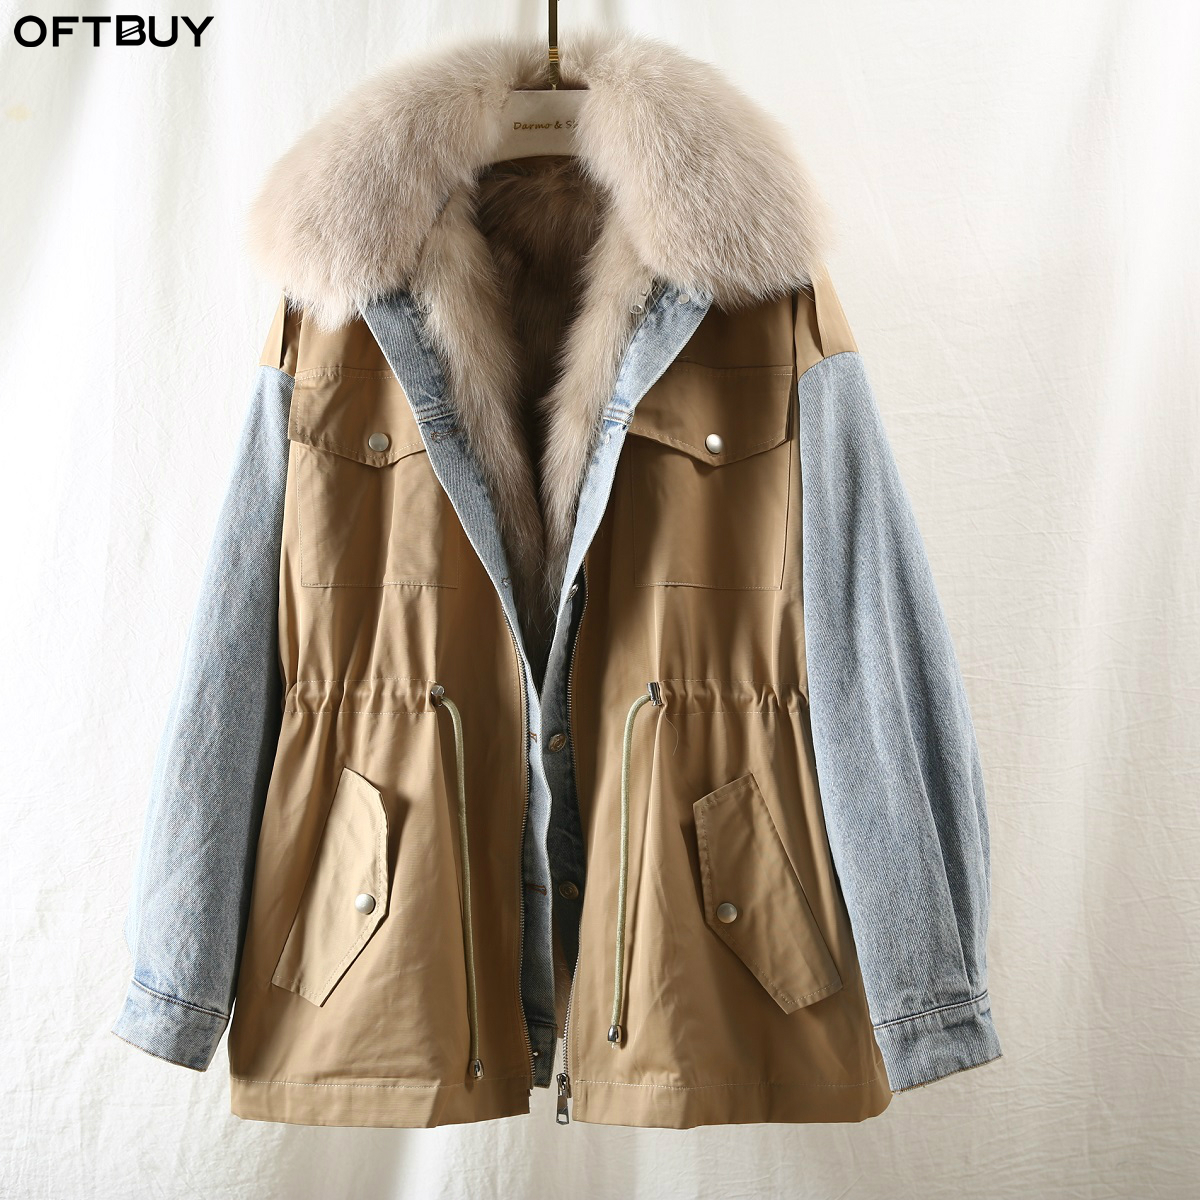 OFTBUY 2019 Safari Style Denim Patchwork Parka Real Fur Coat Winter Jacket Women Natural Fox Fur Collar And Liner Warm Outerwear